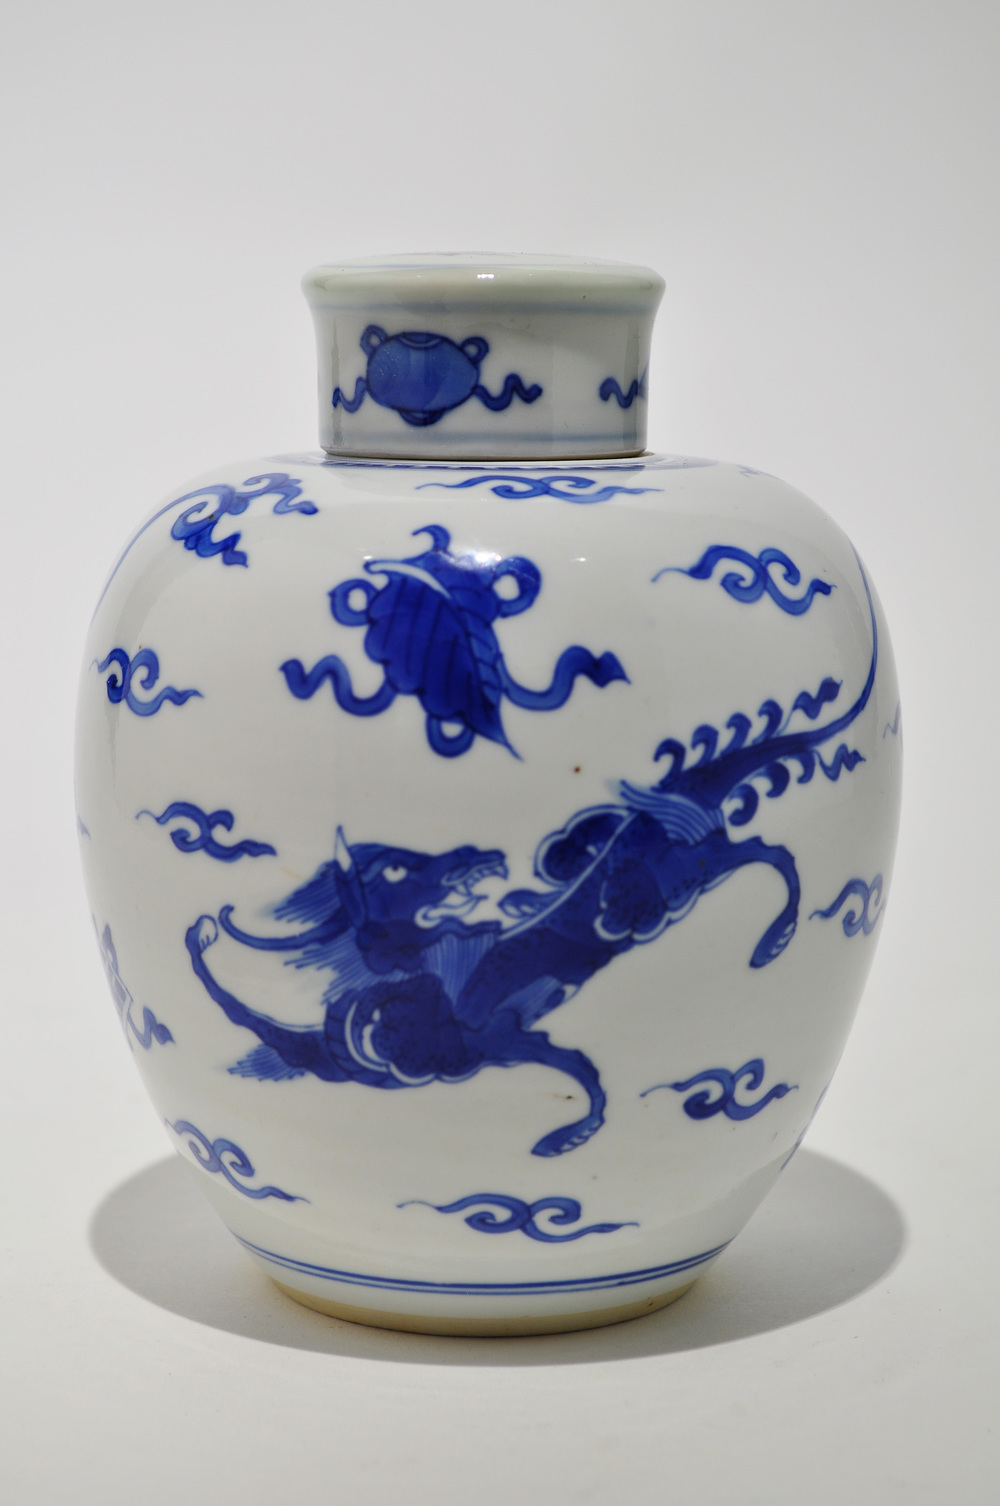 Qing blue white dragon qiling qilong daoguang porcelain jar qing blue white dragon qiling qilong daoguang porcelain jar chinese antique 19th asian house of chicago floridaeventfo Images